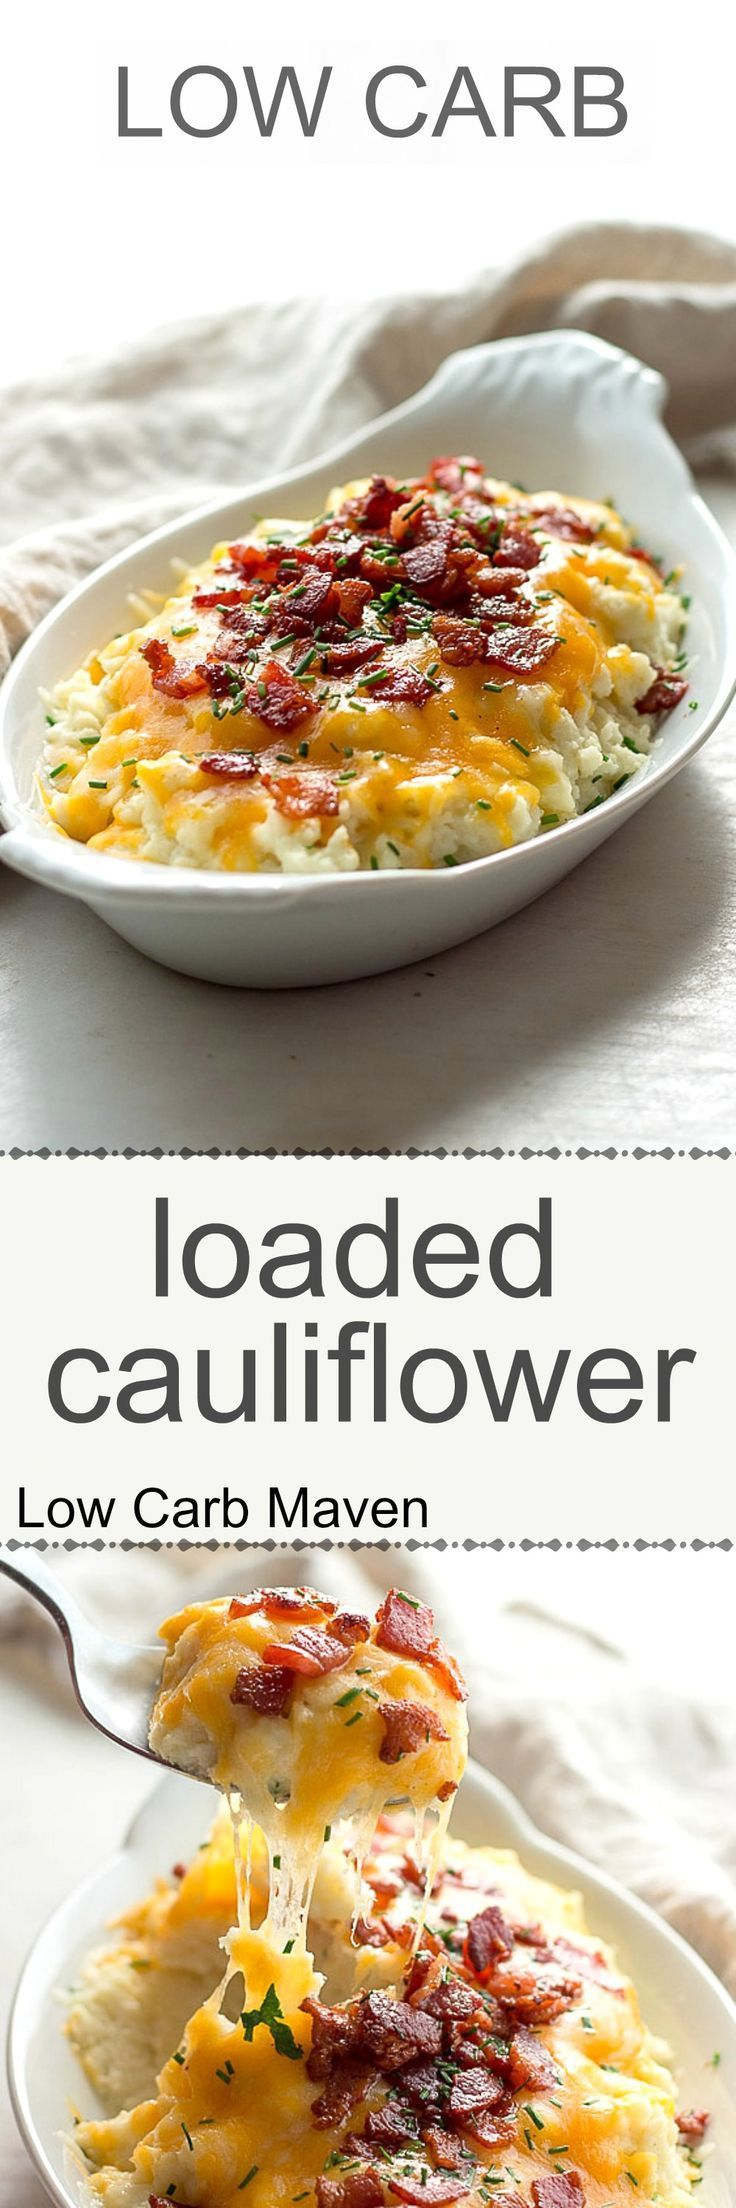 Low carb loaded cauliflower with sour cream, chives, cheddar cheese and bacon. Keto.